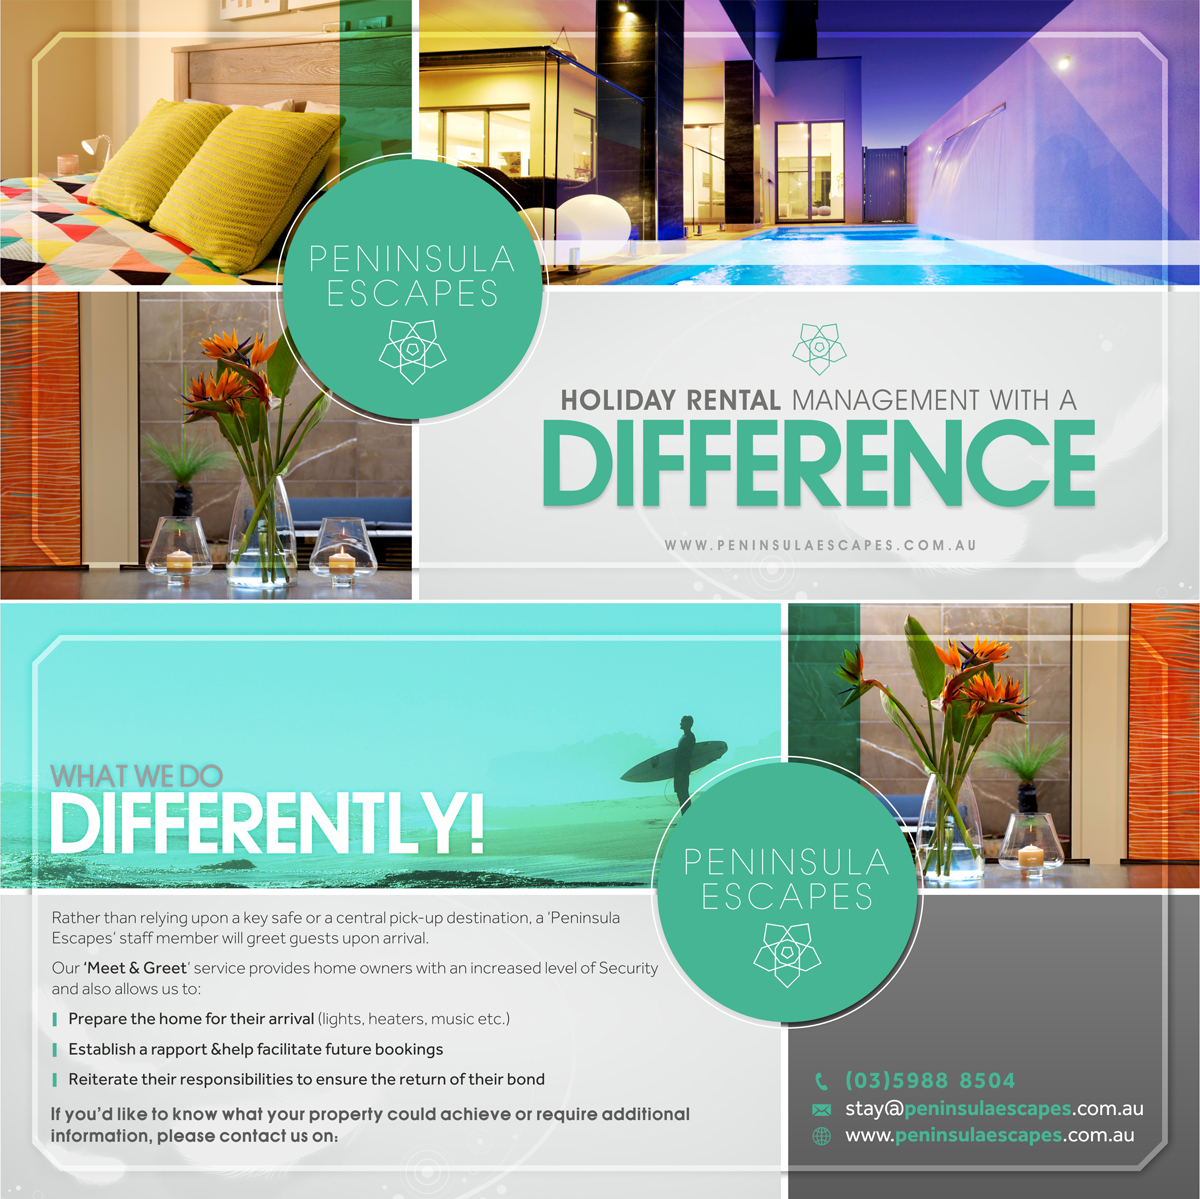 hotel flyer design galleries for inspiration flyer design by theziners theziners